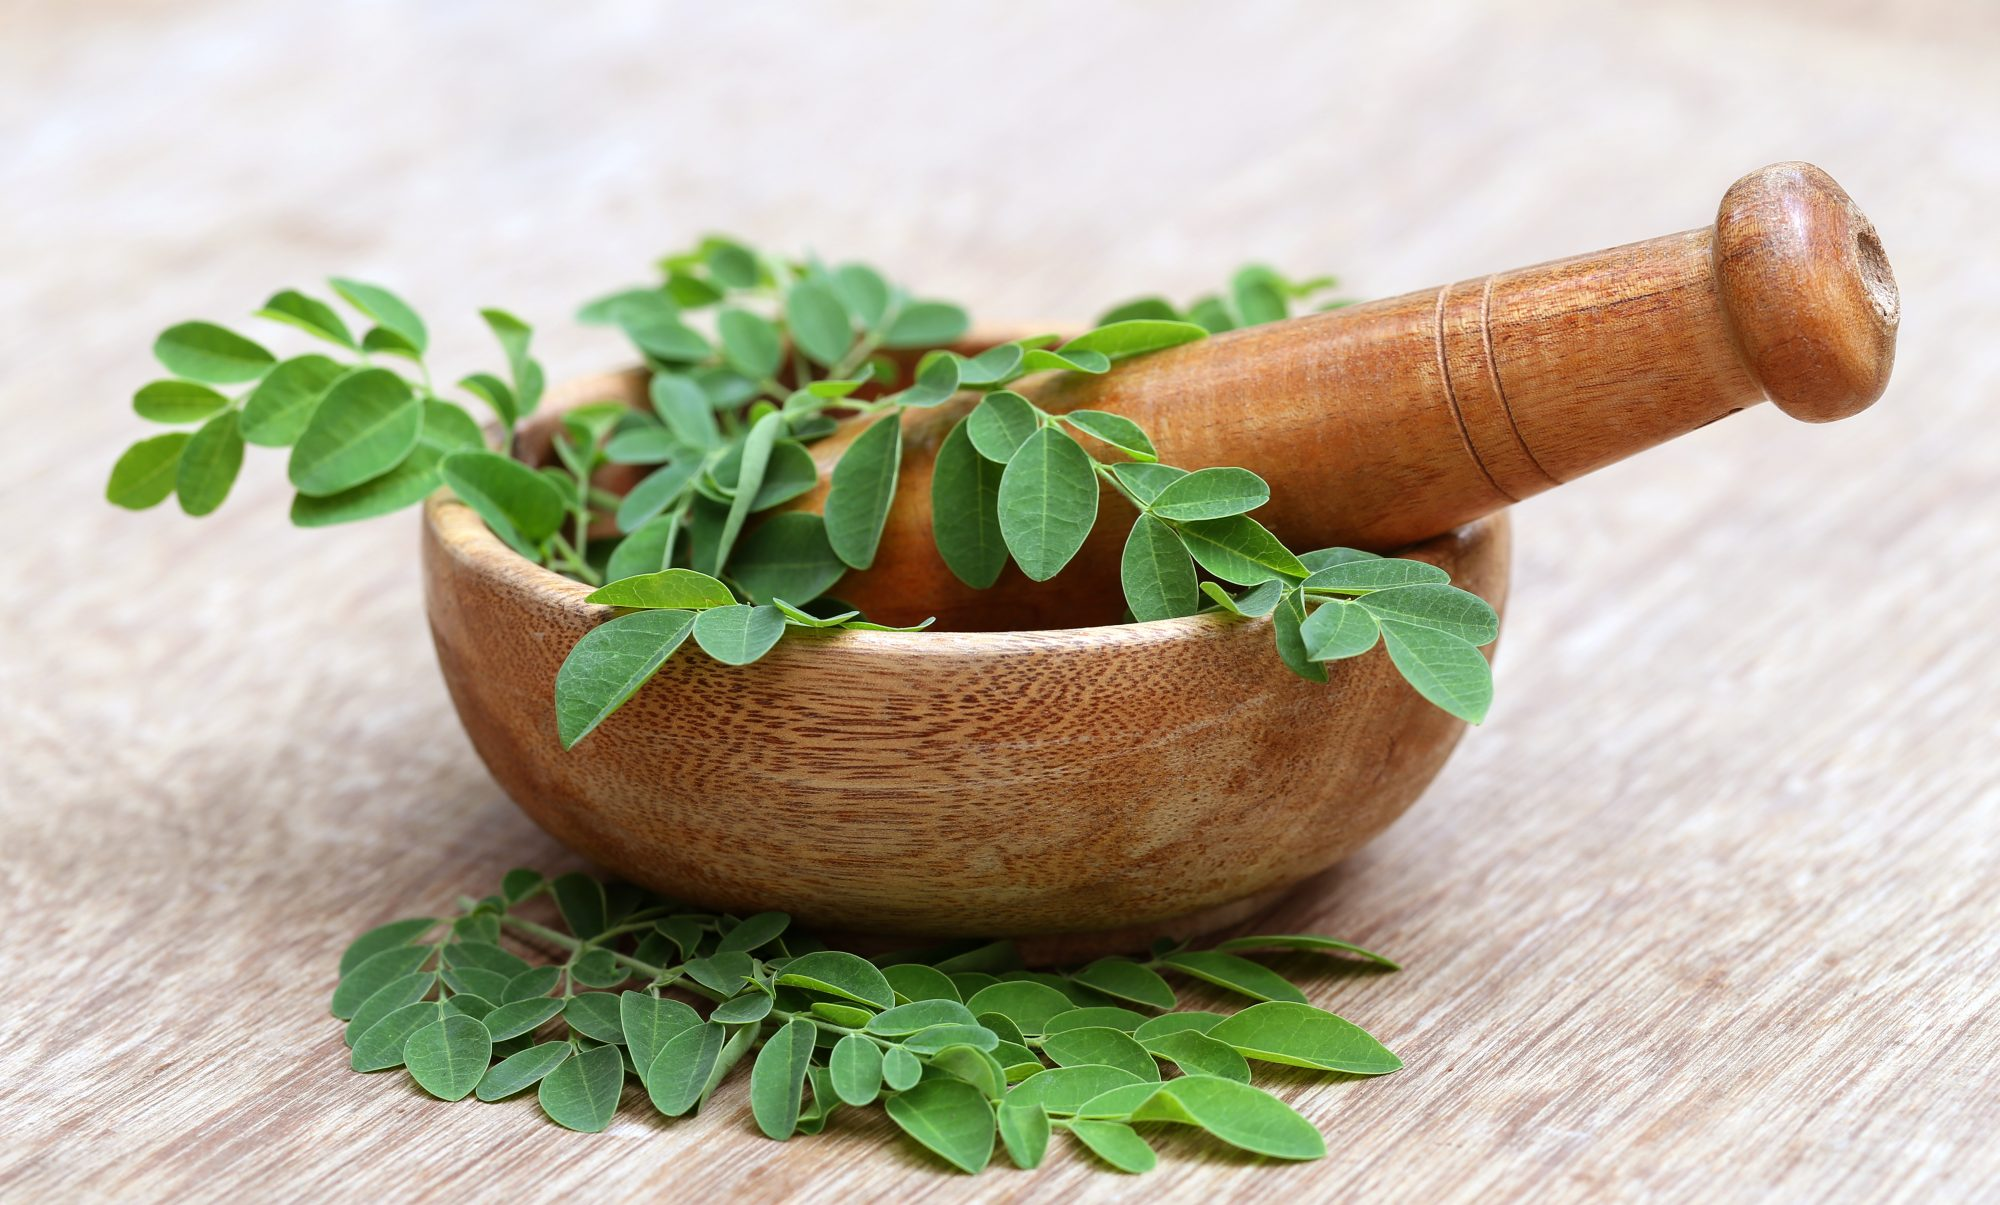 Is Moringa the New Kale? Here's What an RD Thinks